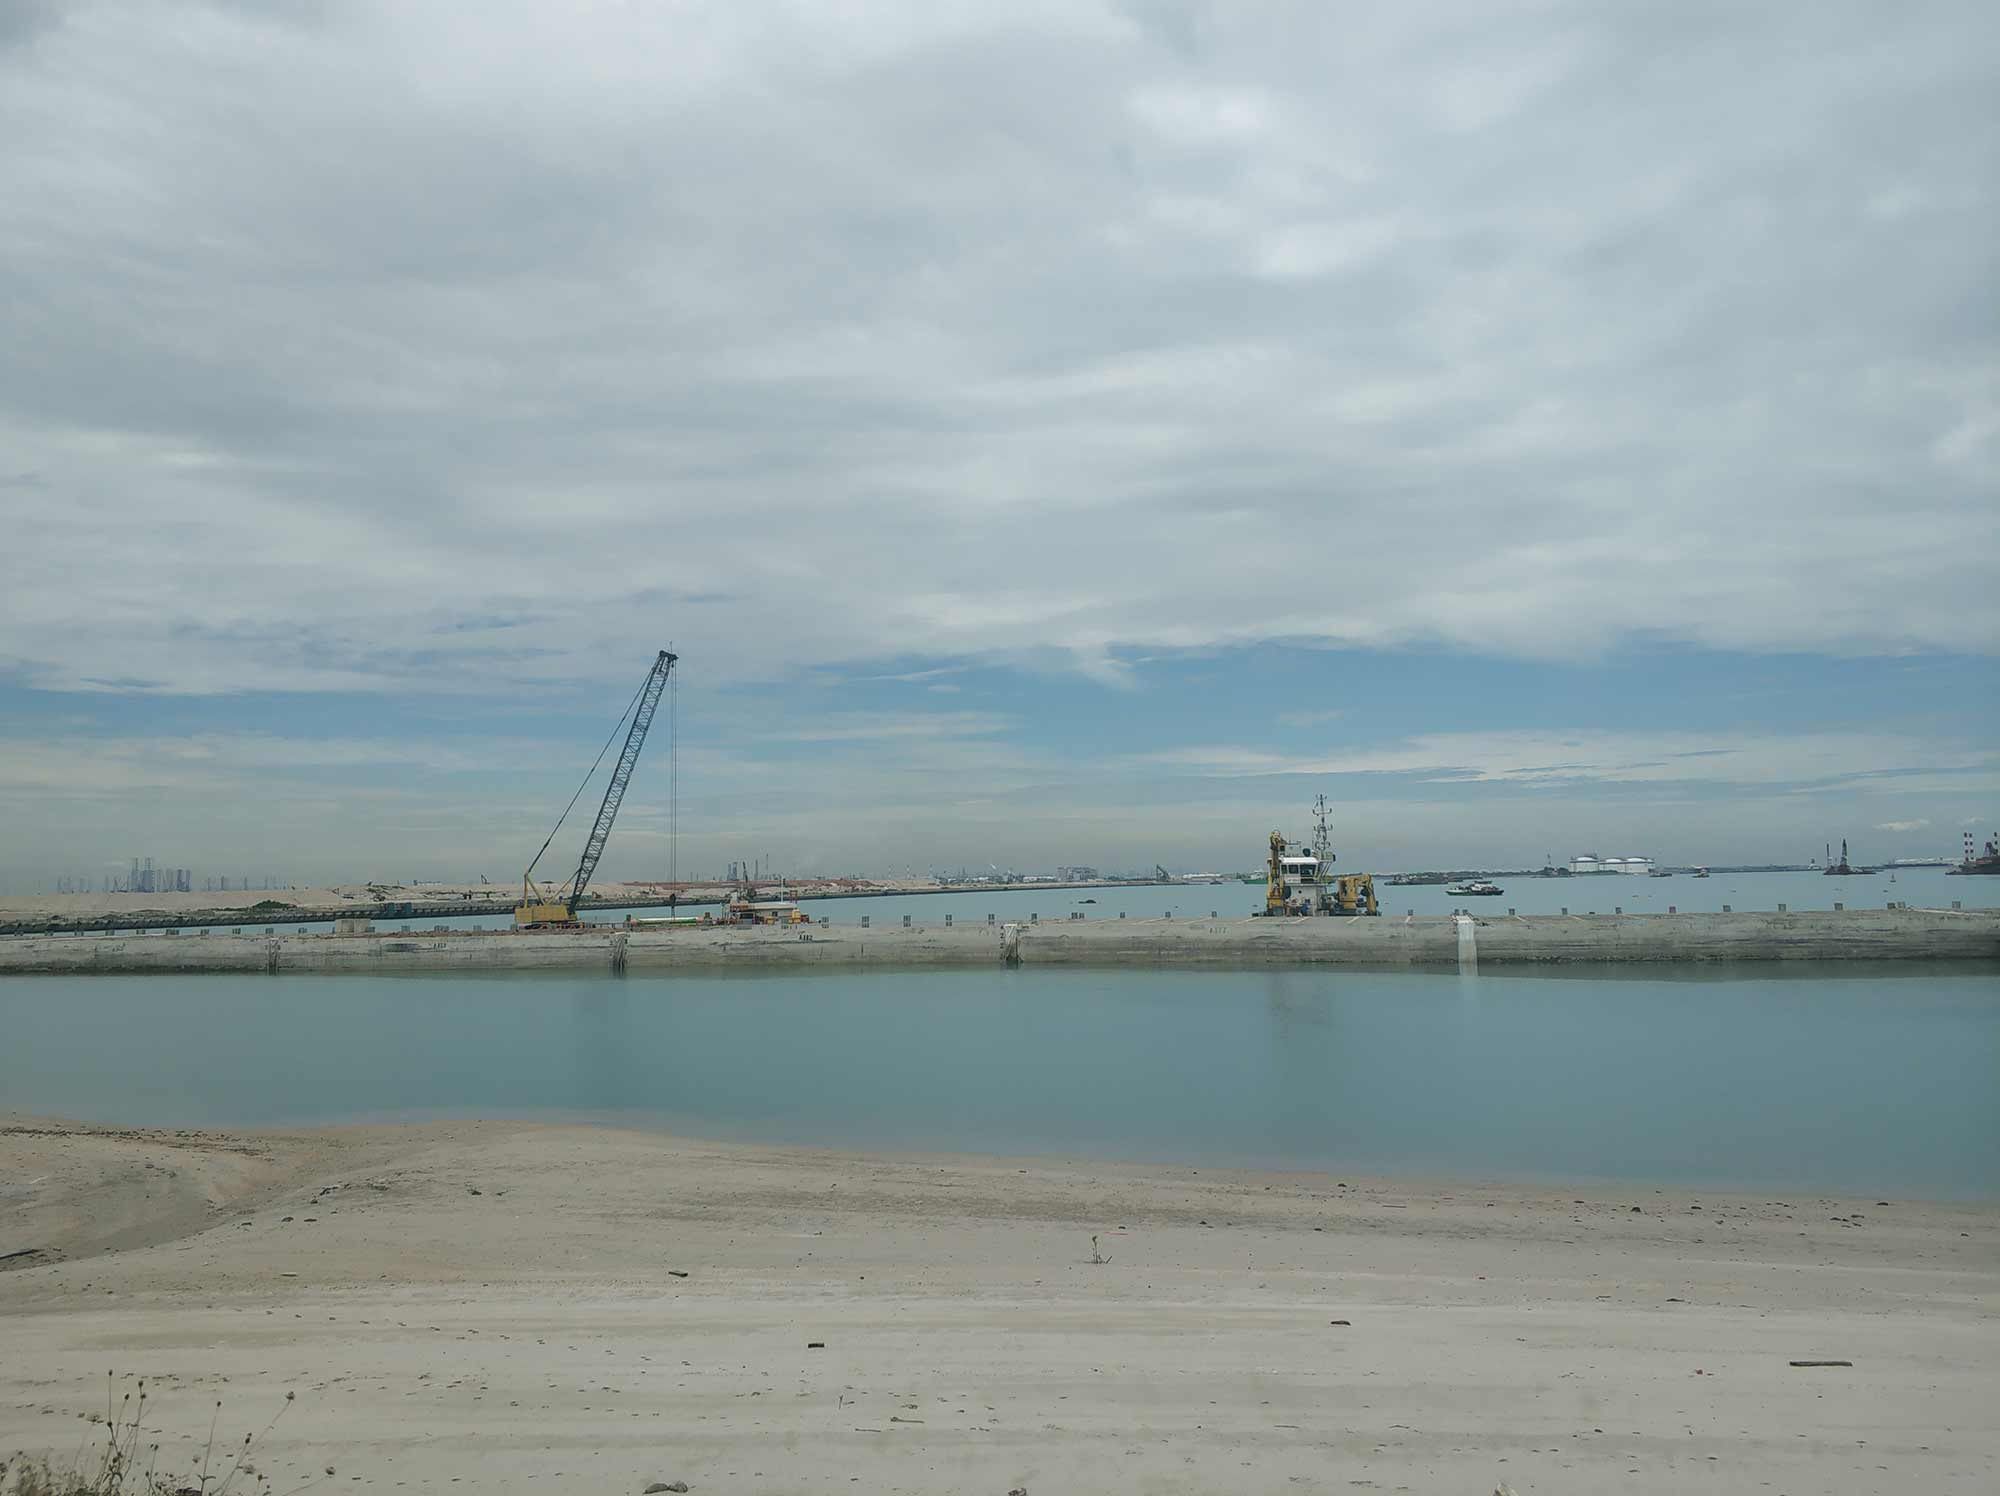 Tuas port reclamation, 2019. Photograph: William Jamieson.